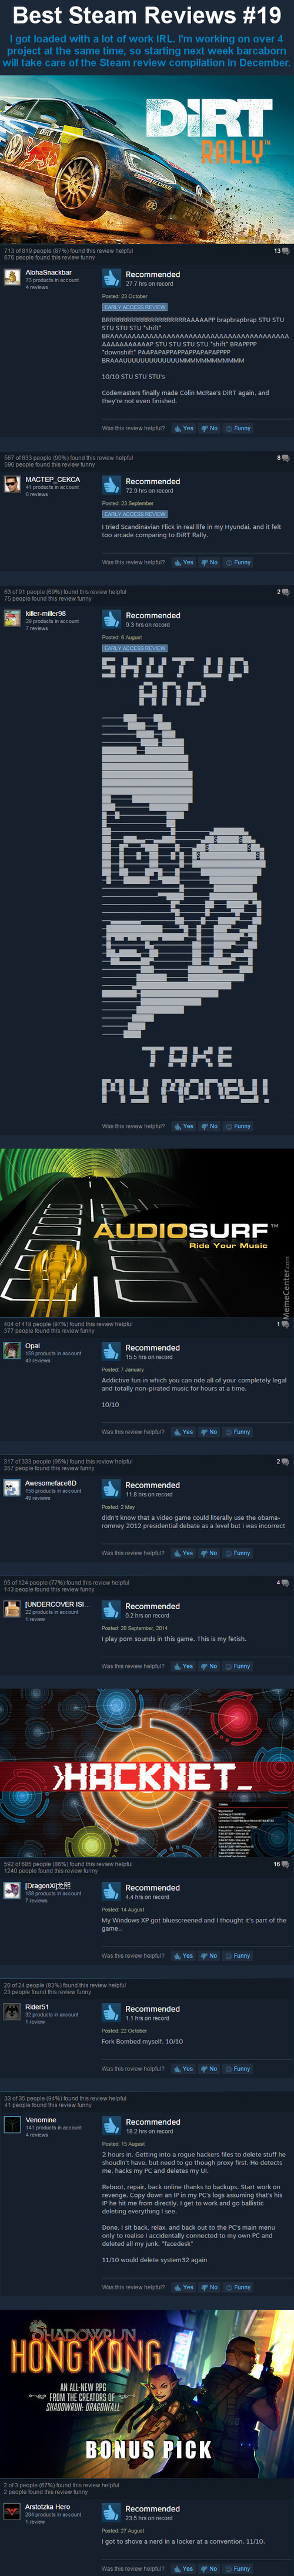 Best Steam Reviews #19 - Invader Is Kill This Month